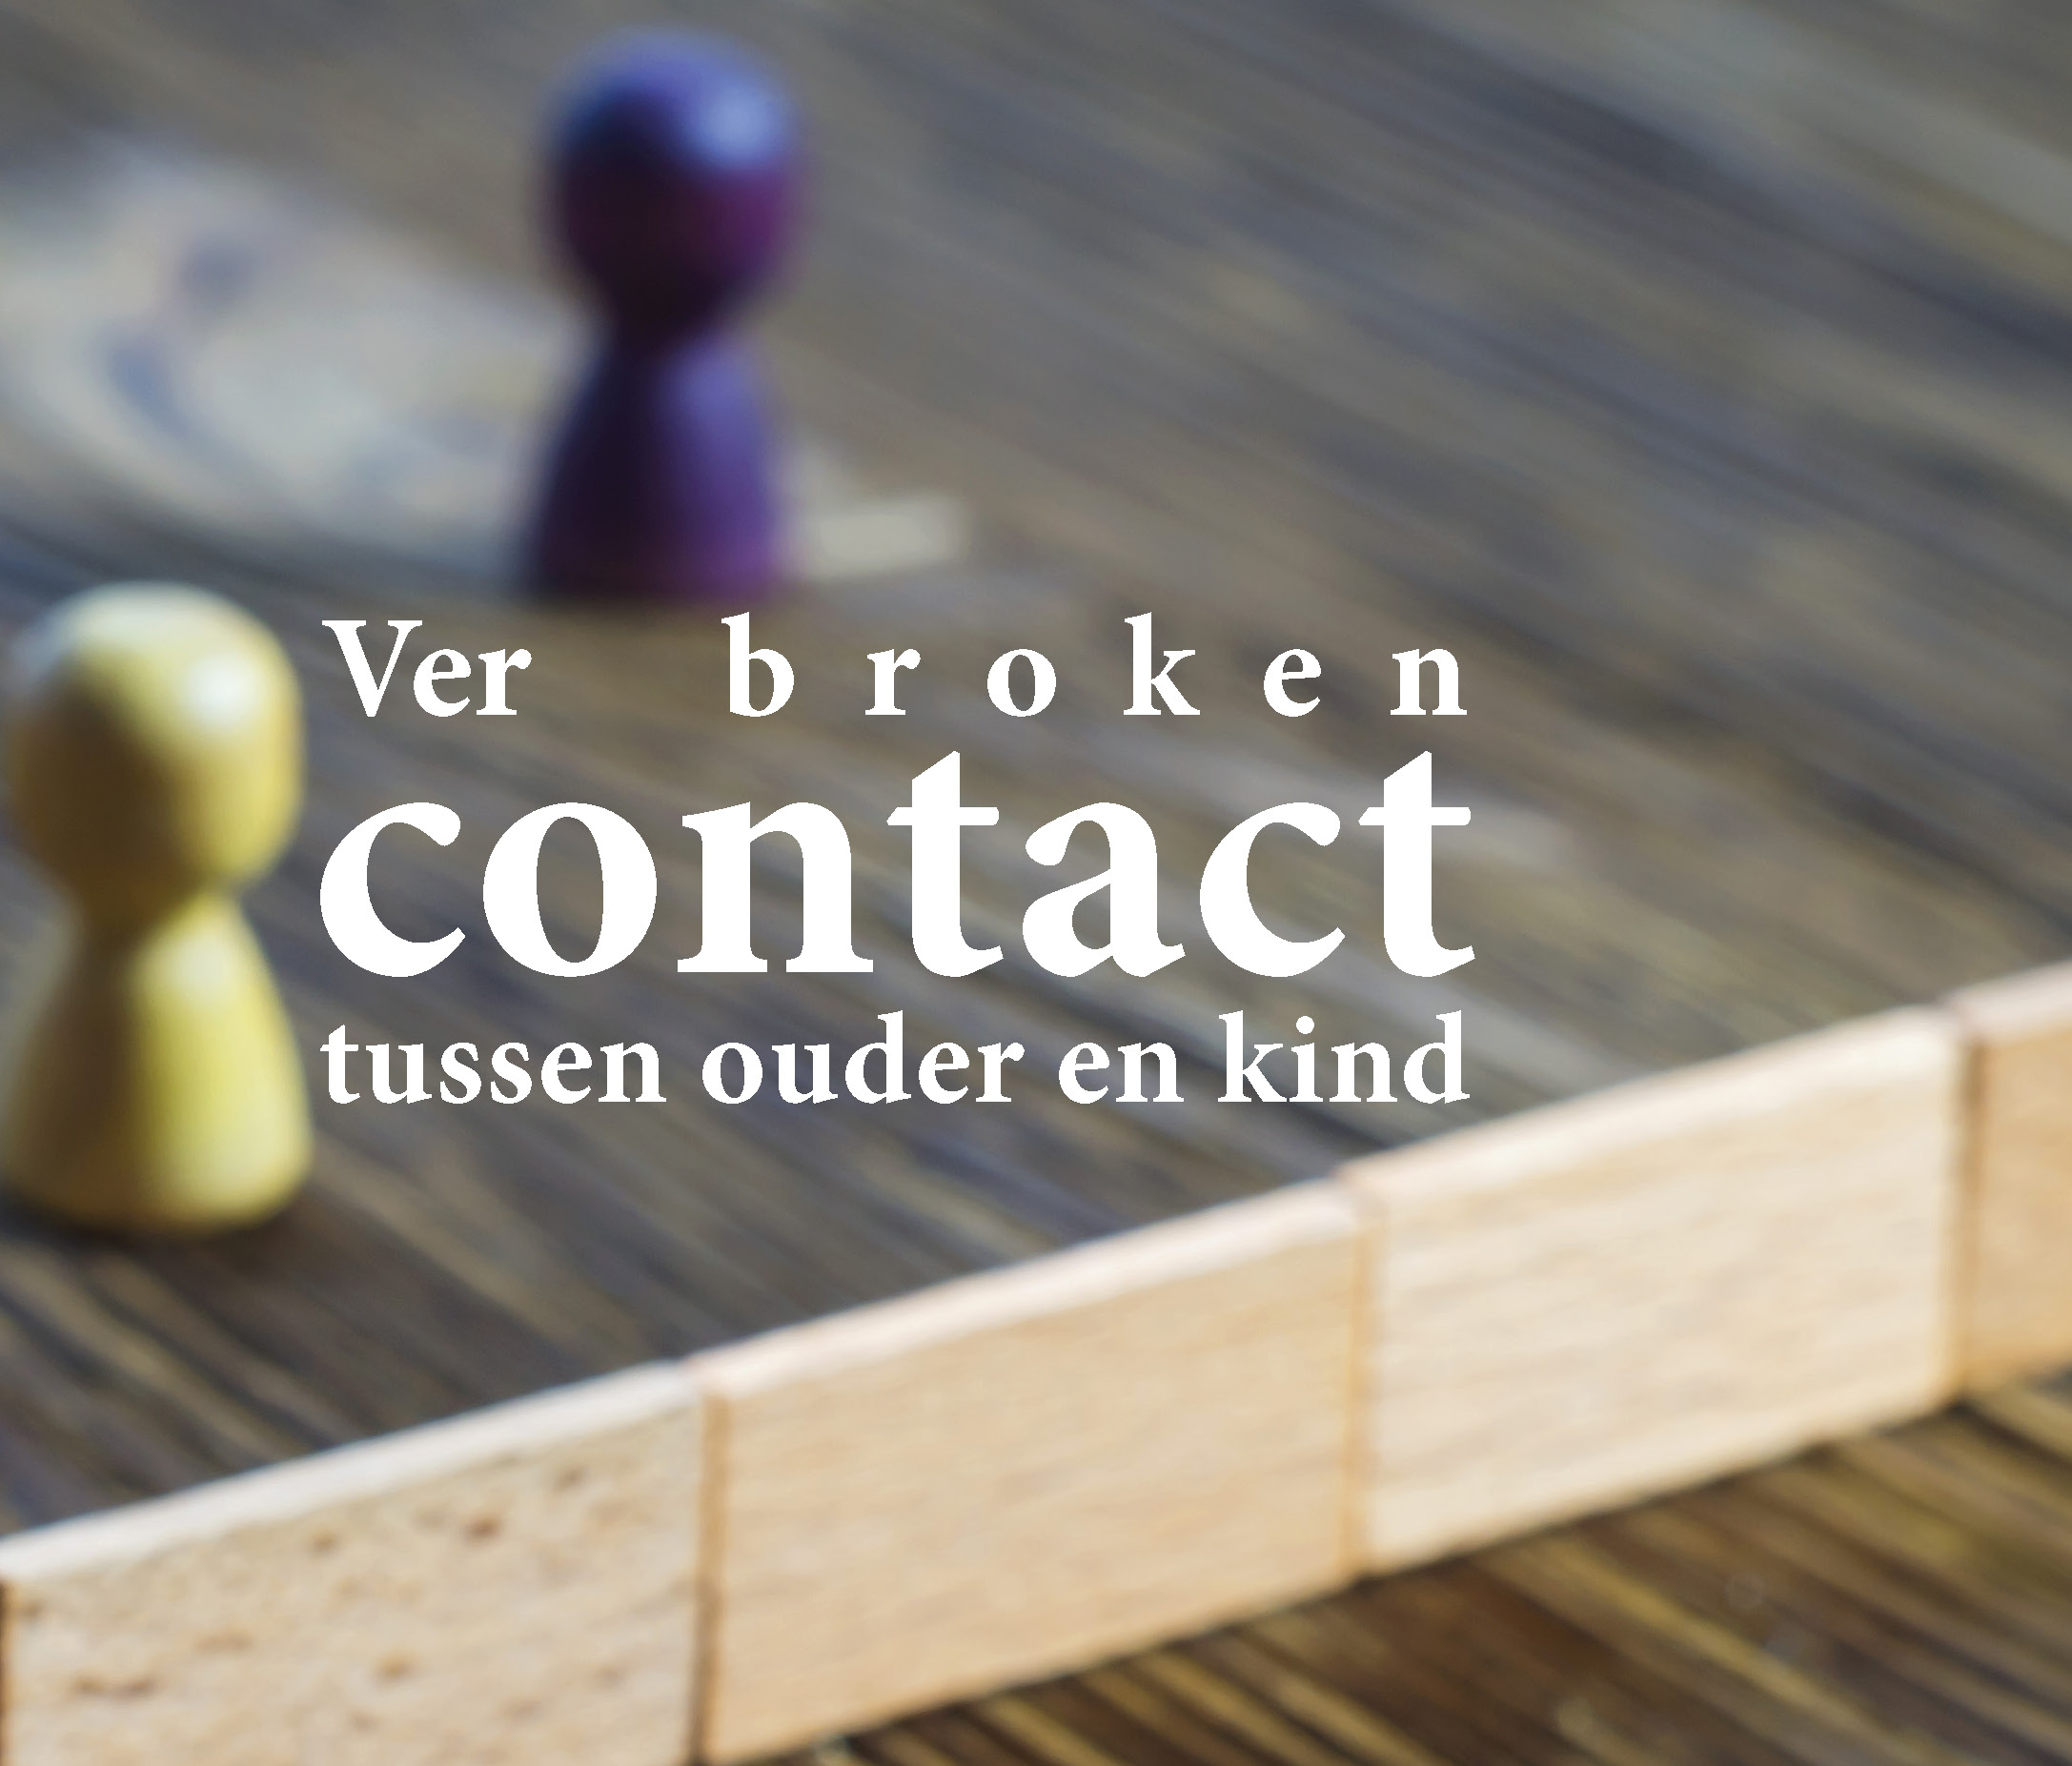 Boek over verbroken contact